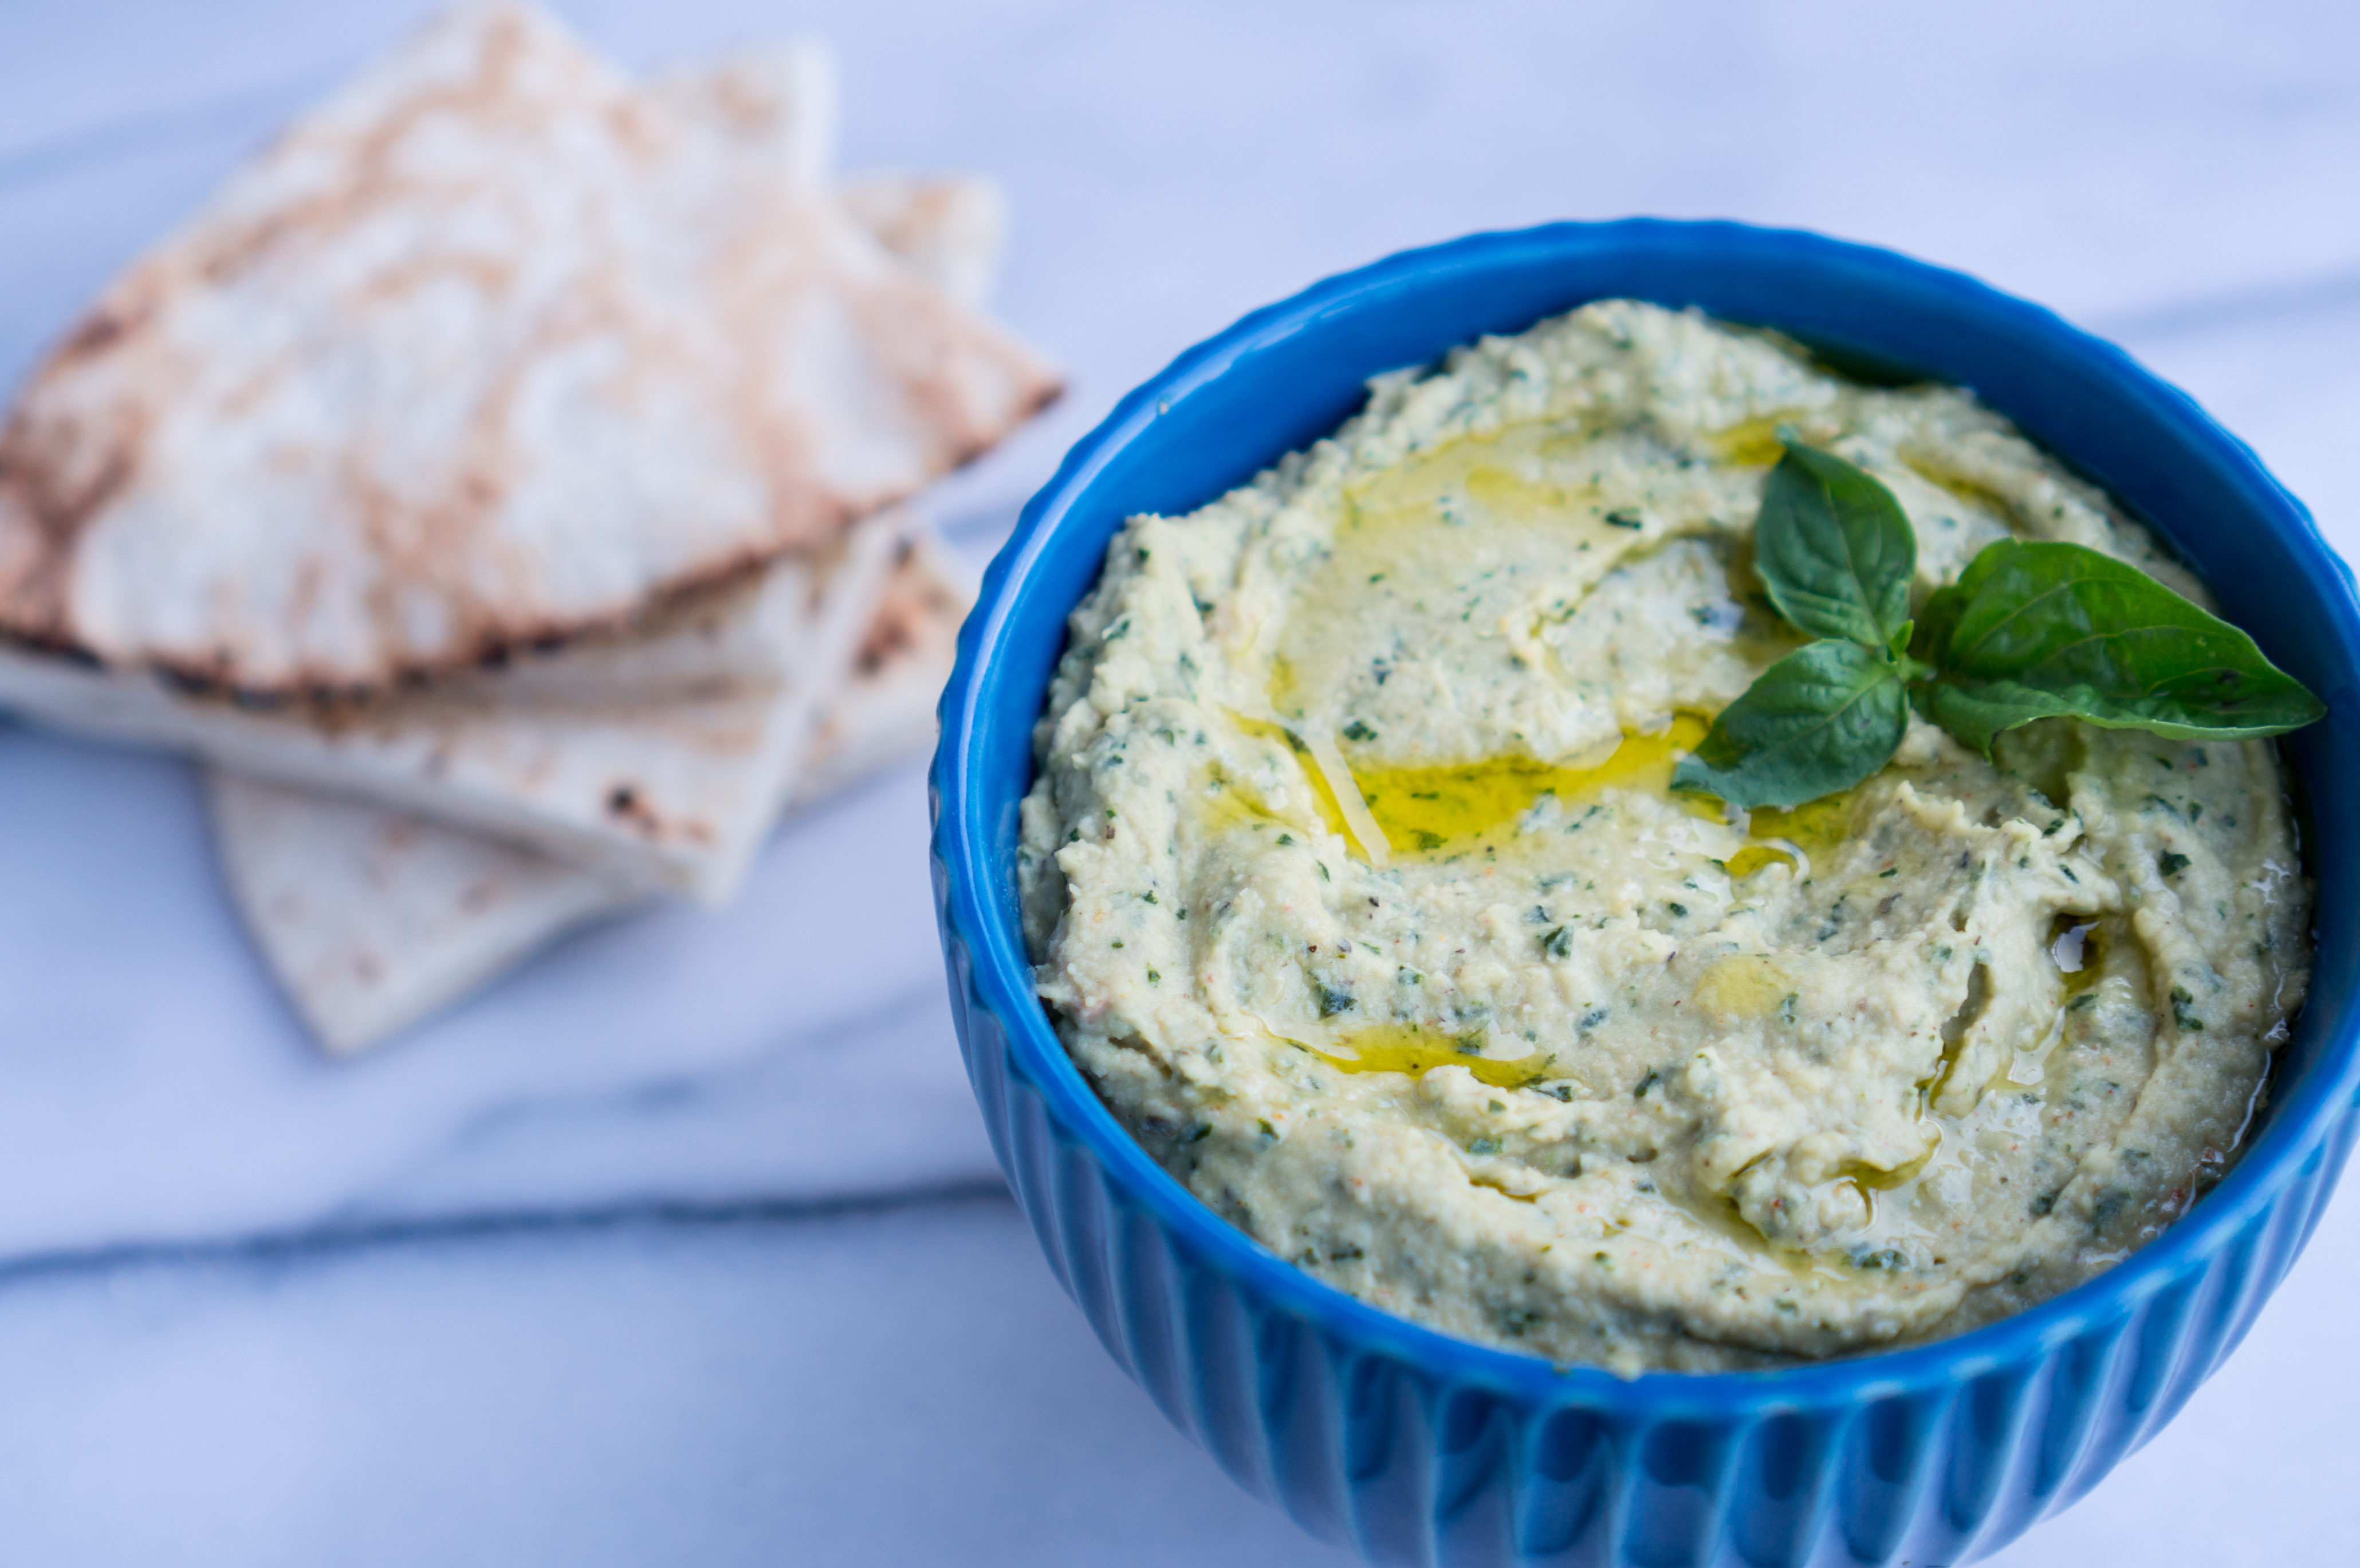 Lemon Basil Hummus – Simple recipe for healthy, homemade Lemon Basil Hummus! Just blend chickpeas, creamy tahini, fresh basil leaves, lemon juice, extra virgin olive oil, and garlic ♥ We can't stop snacking on this smooth, dreamy, creamy vegan dip! | freeyourfork.com